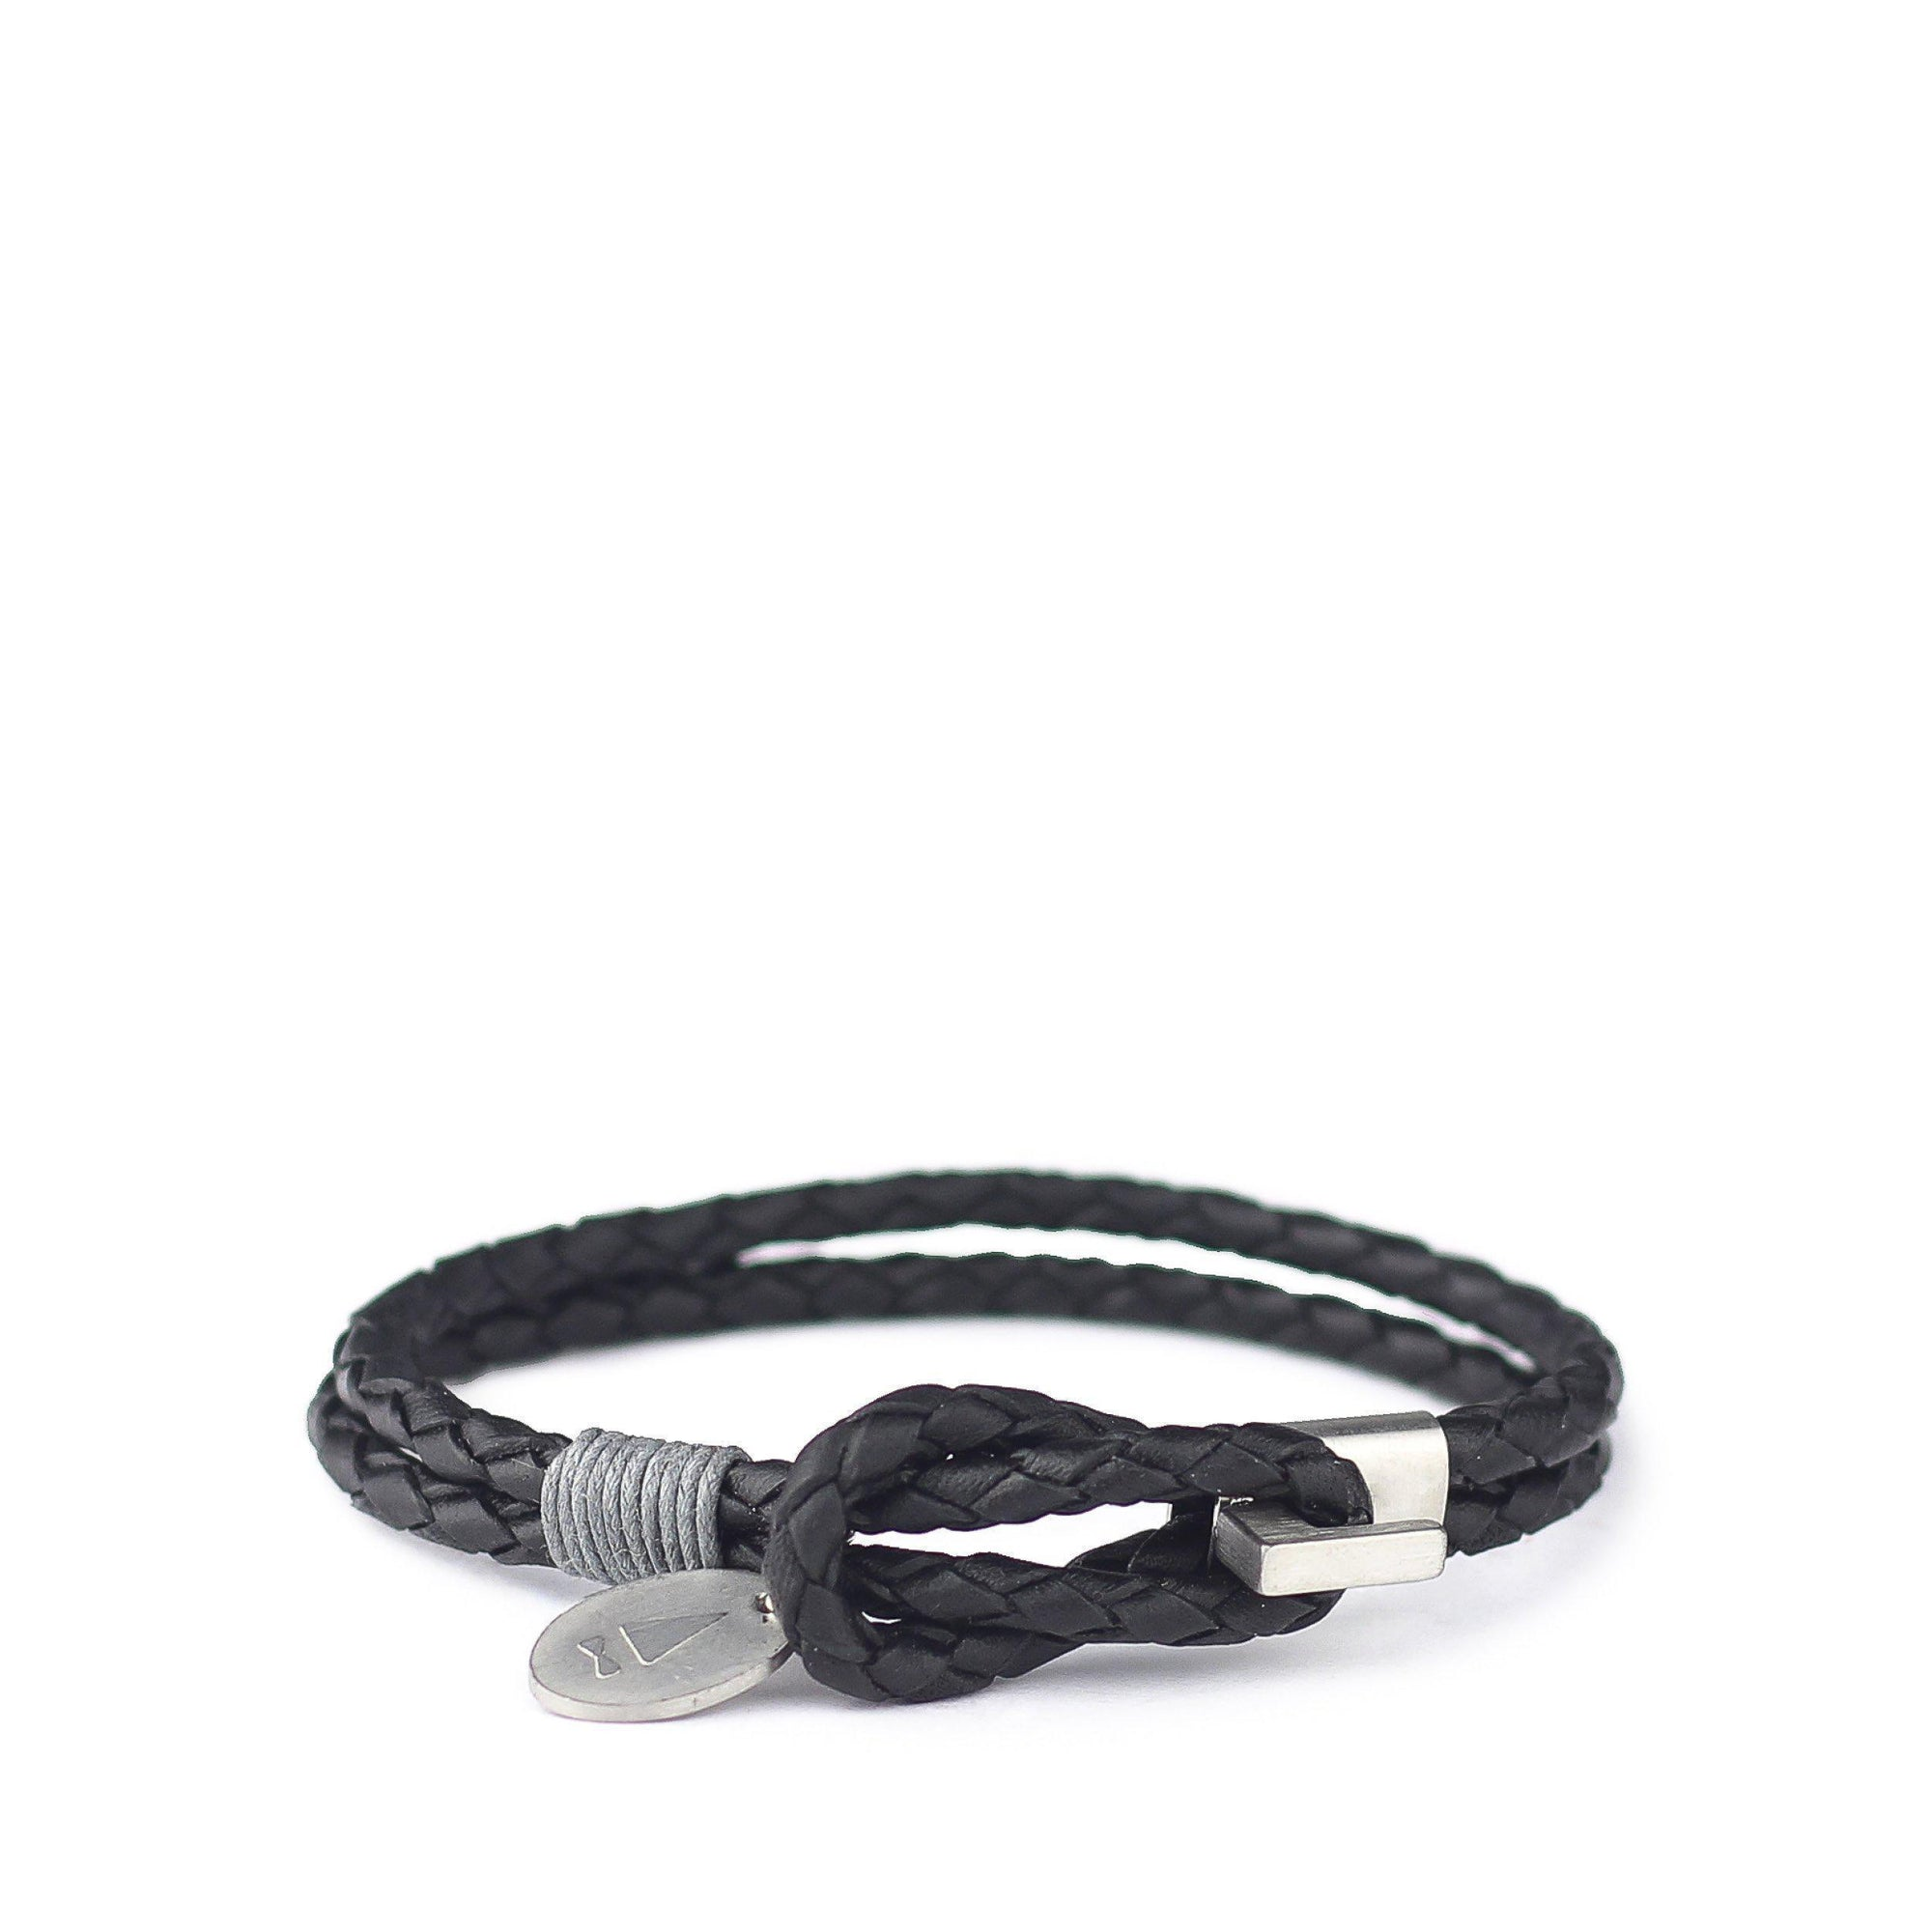 Gnome and Bow Smith Multi-Wrap Black Leather Bracelet-Gnome & Bow-Temples and Markets